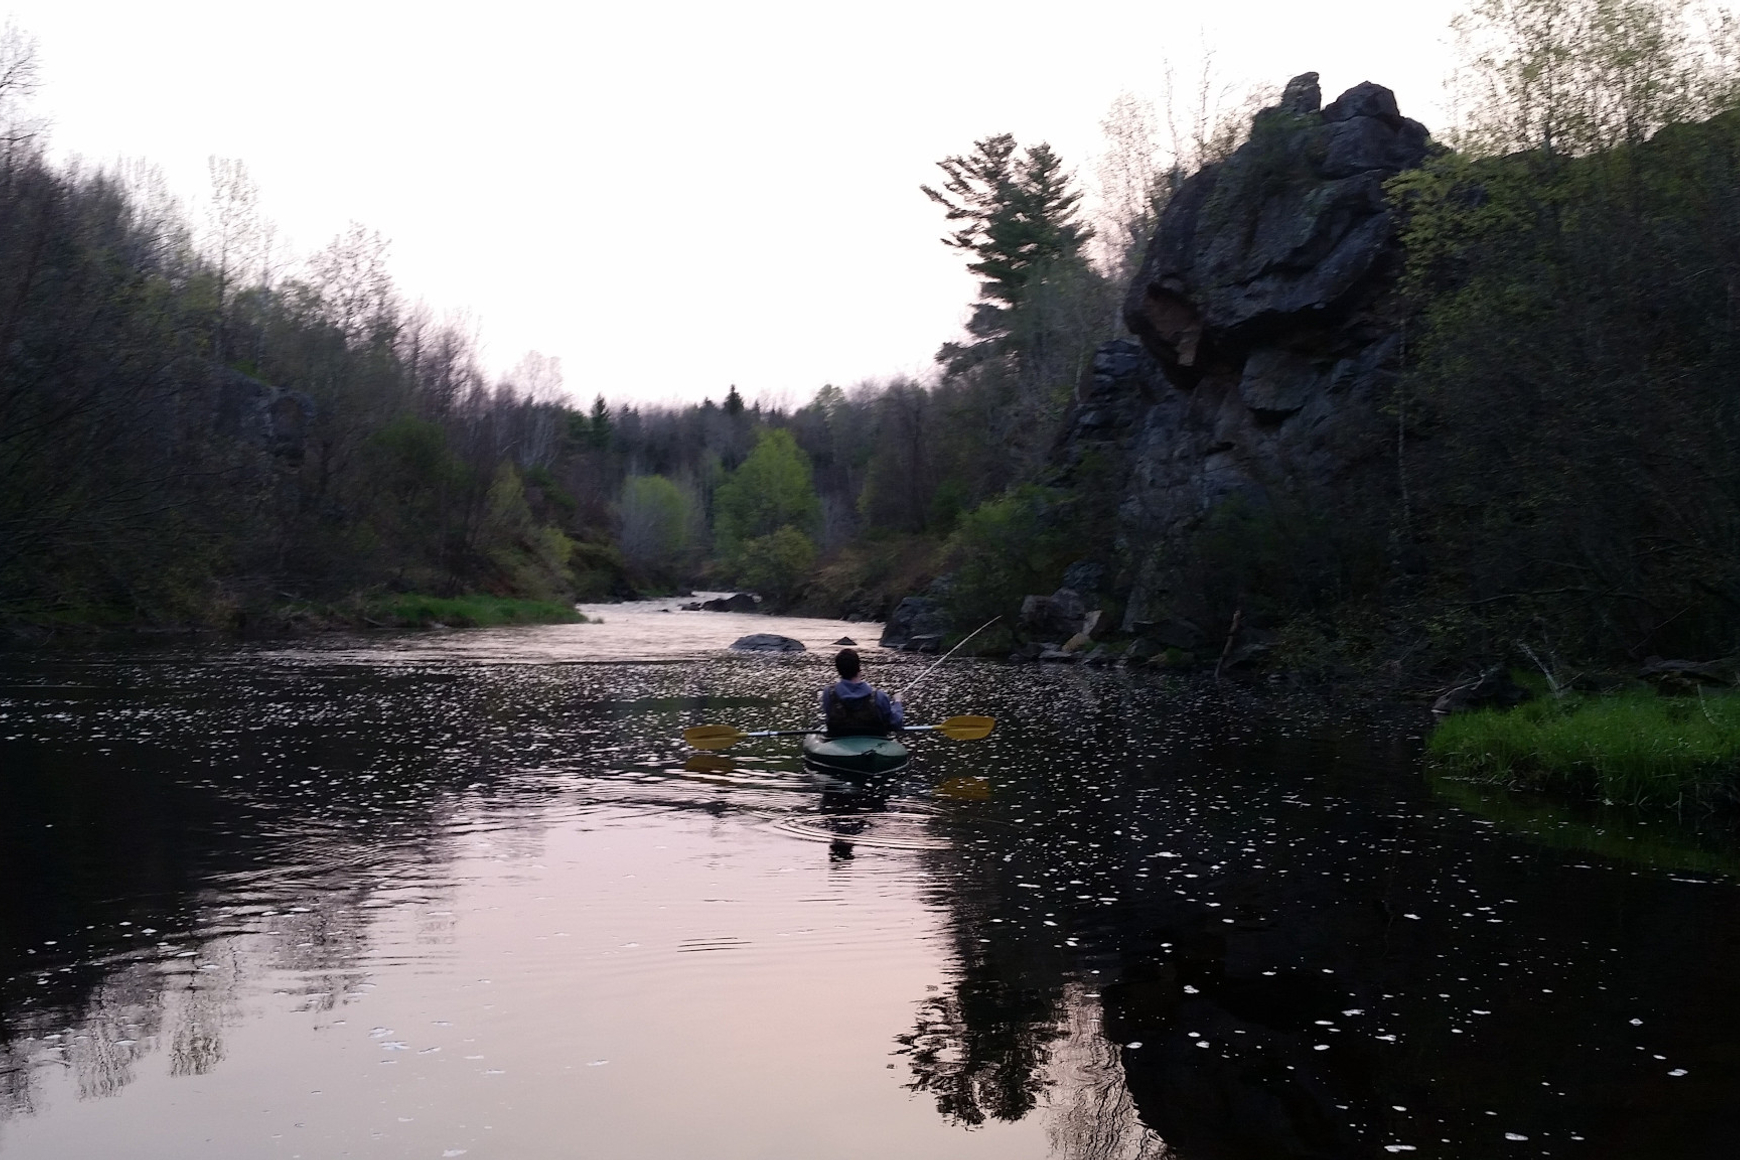 Photo of a kayaker fishing in a serene river setting